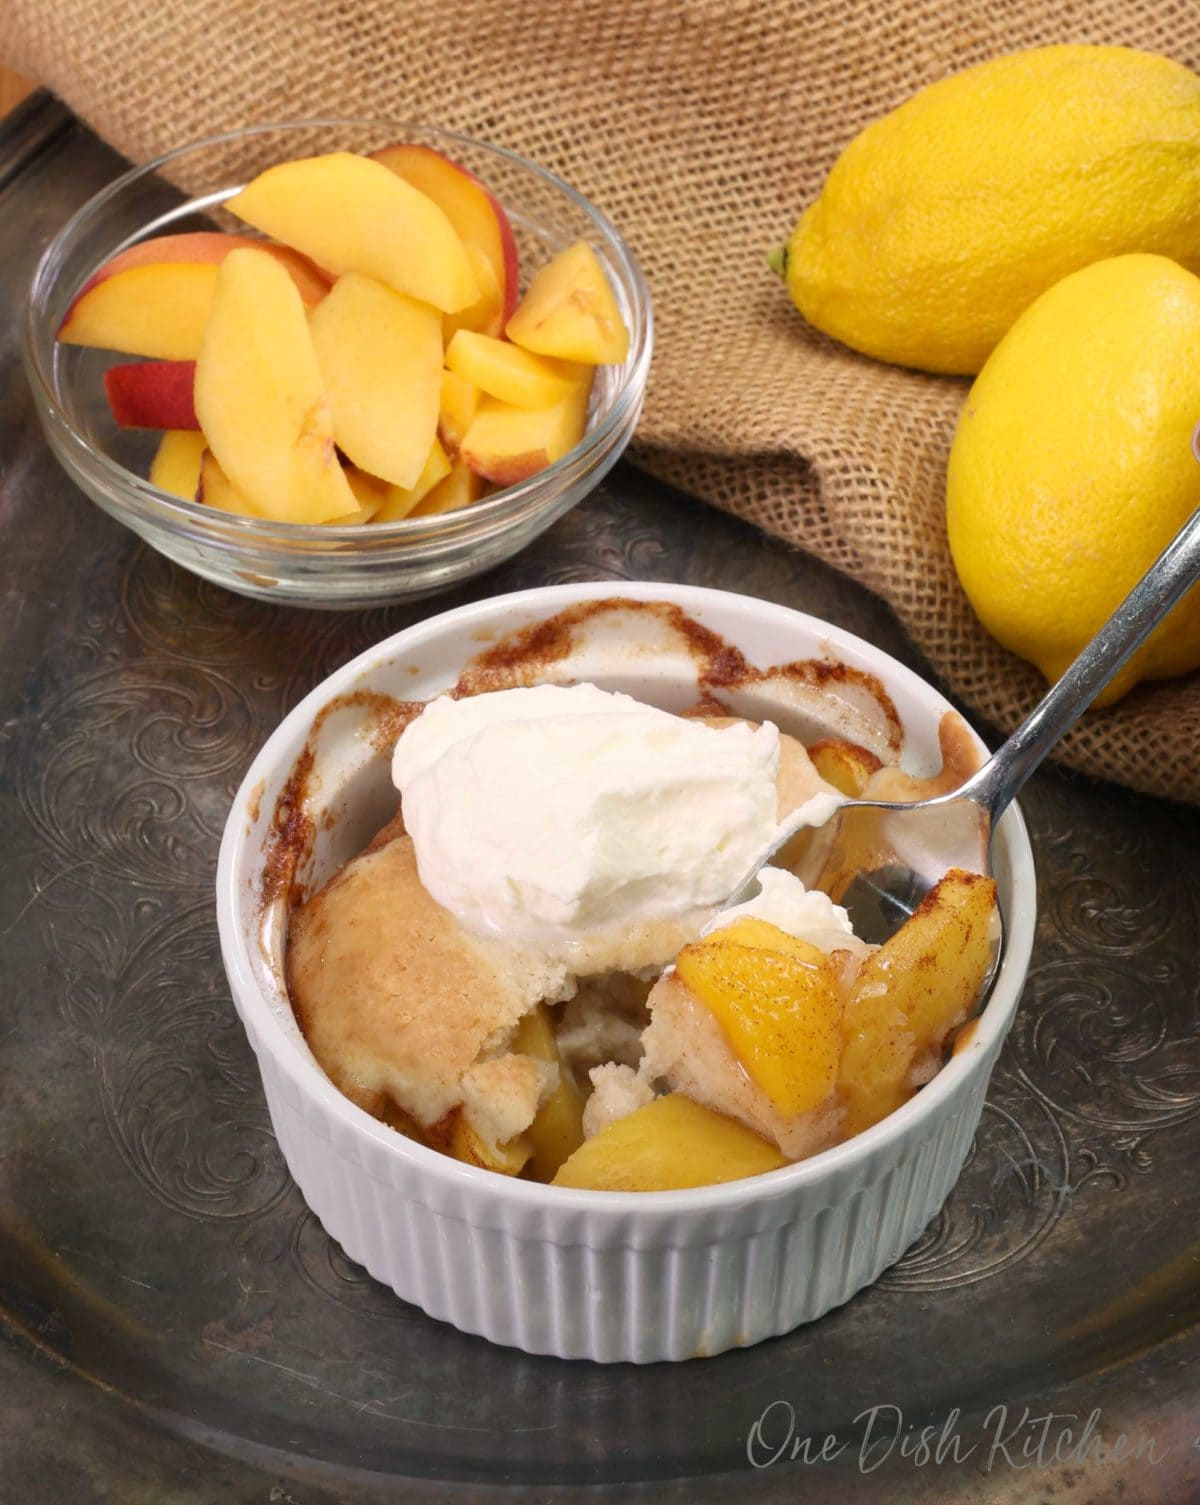 a spoonful of peaches from a peach cobbler with the cobbler in the background